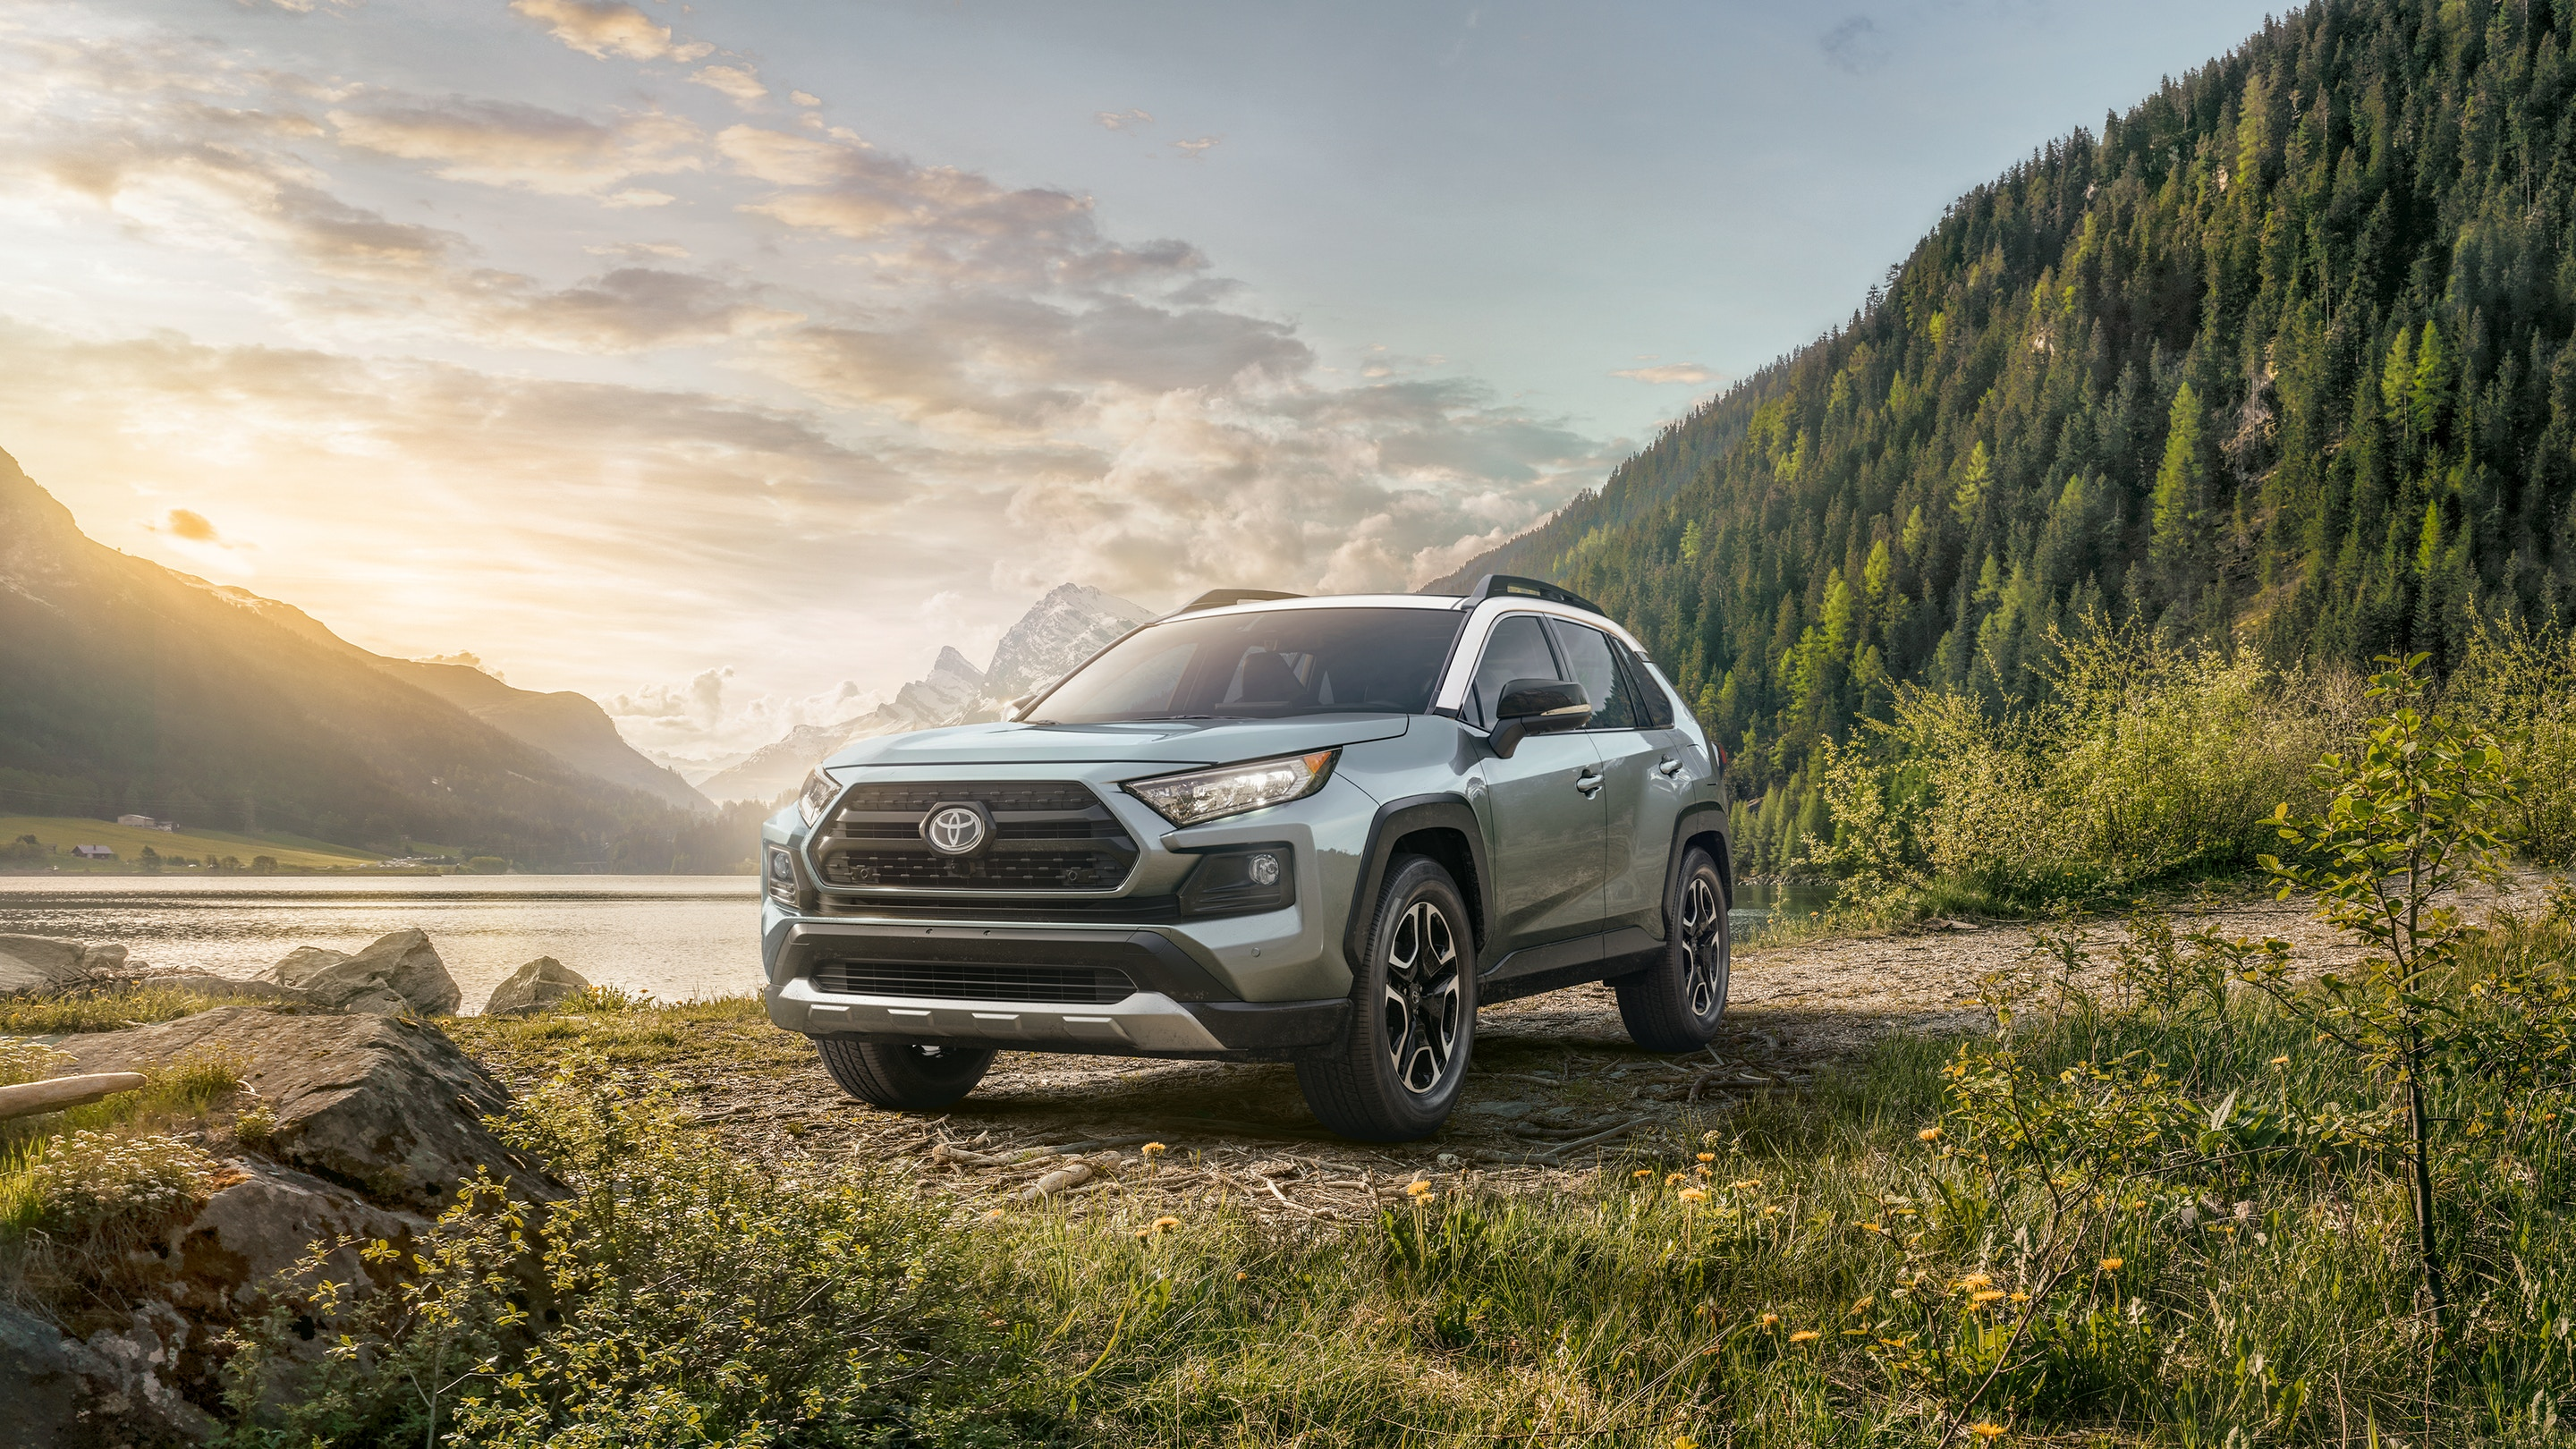 2019 Toyota RAV4 for Sale near Oxford, PA